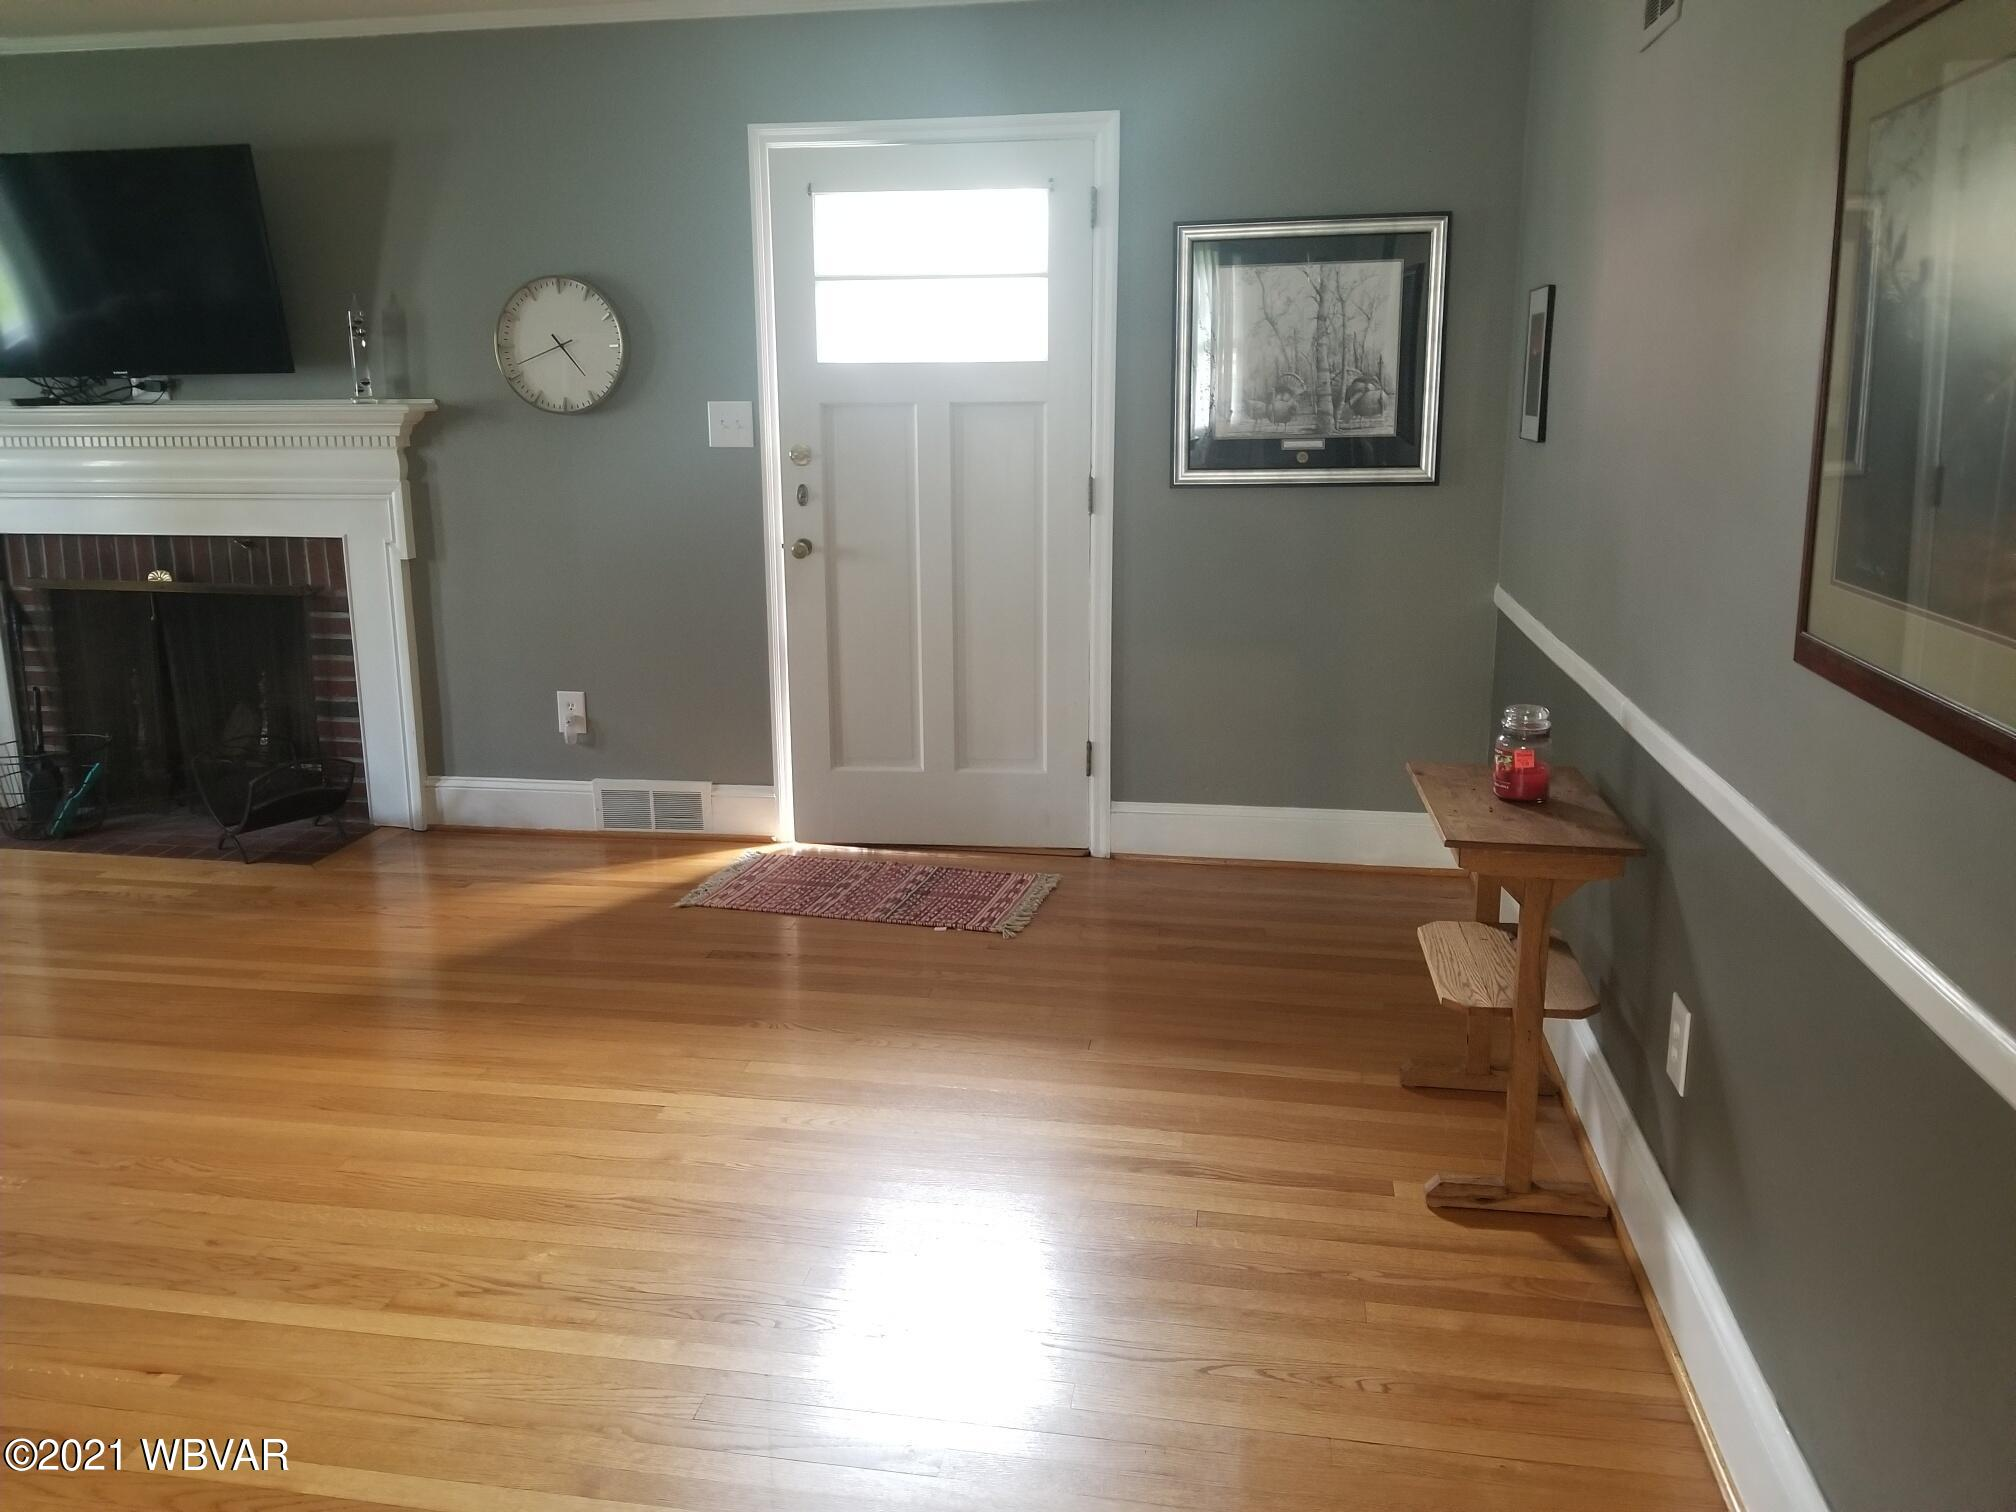 1605 LINCOLN AVENUE, Williamsport, PA 17701, 3 Bedrooms Bedrooms, ,1.5 BathroomsBathrooms,Residential,For sale,LINCOLN,WB-92472